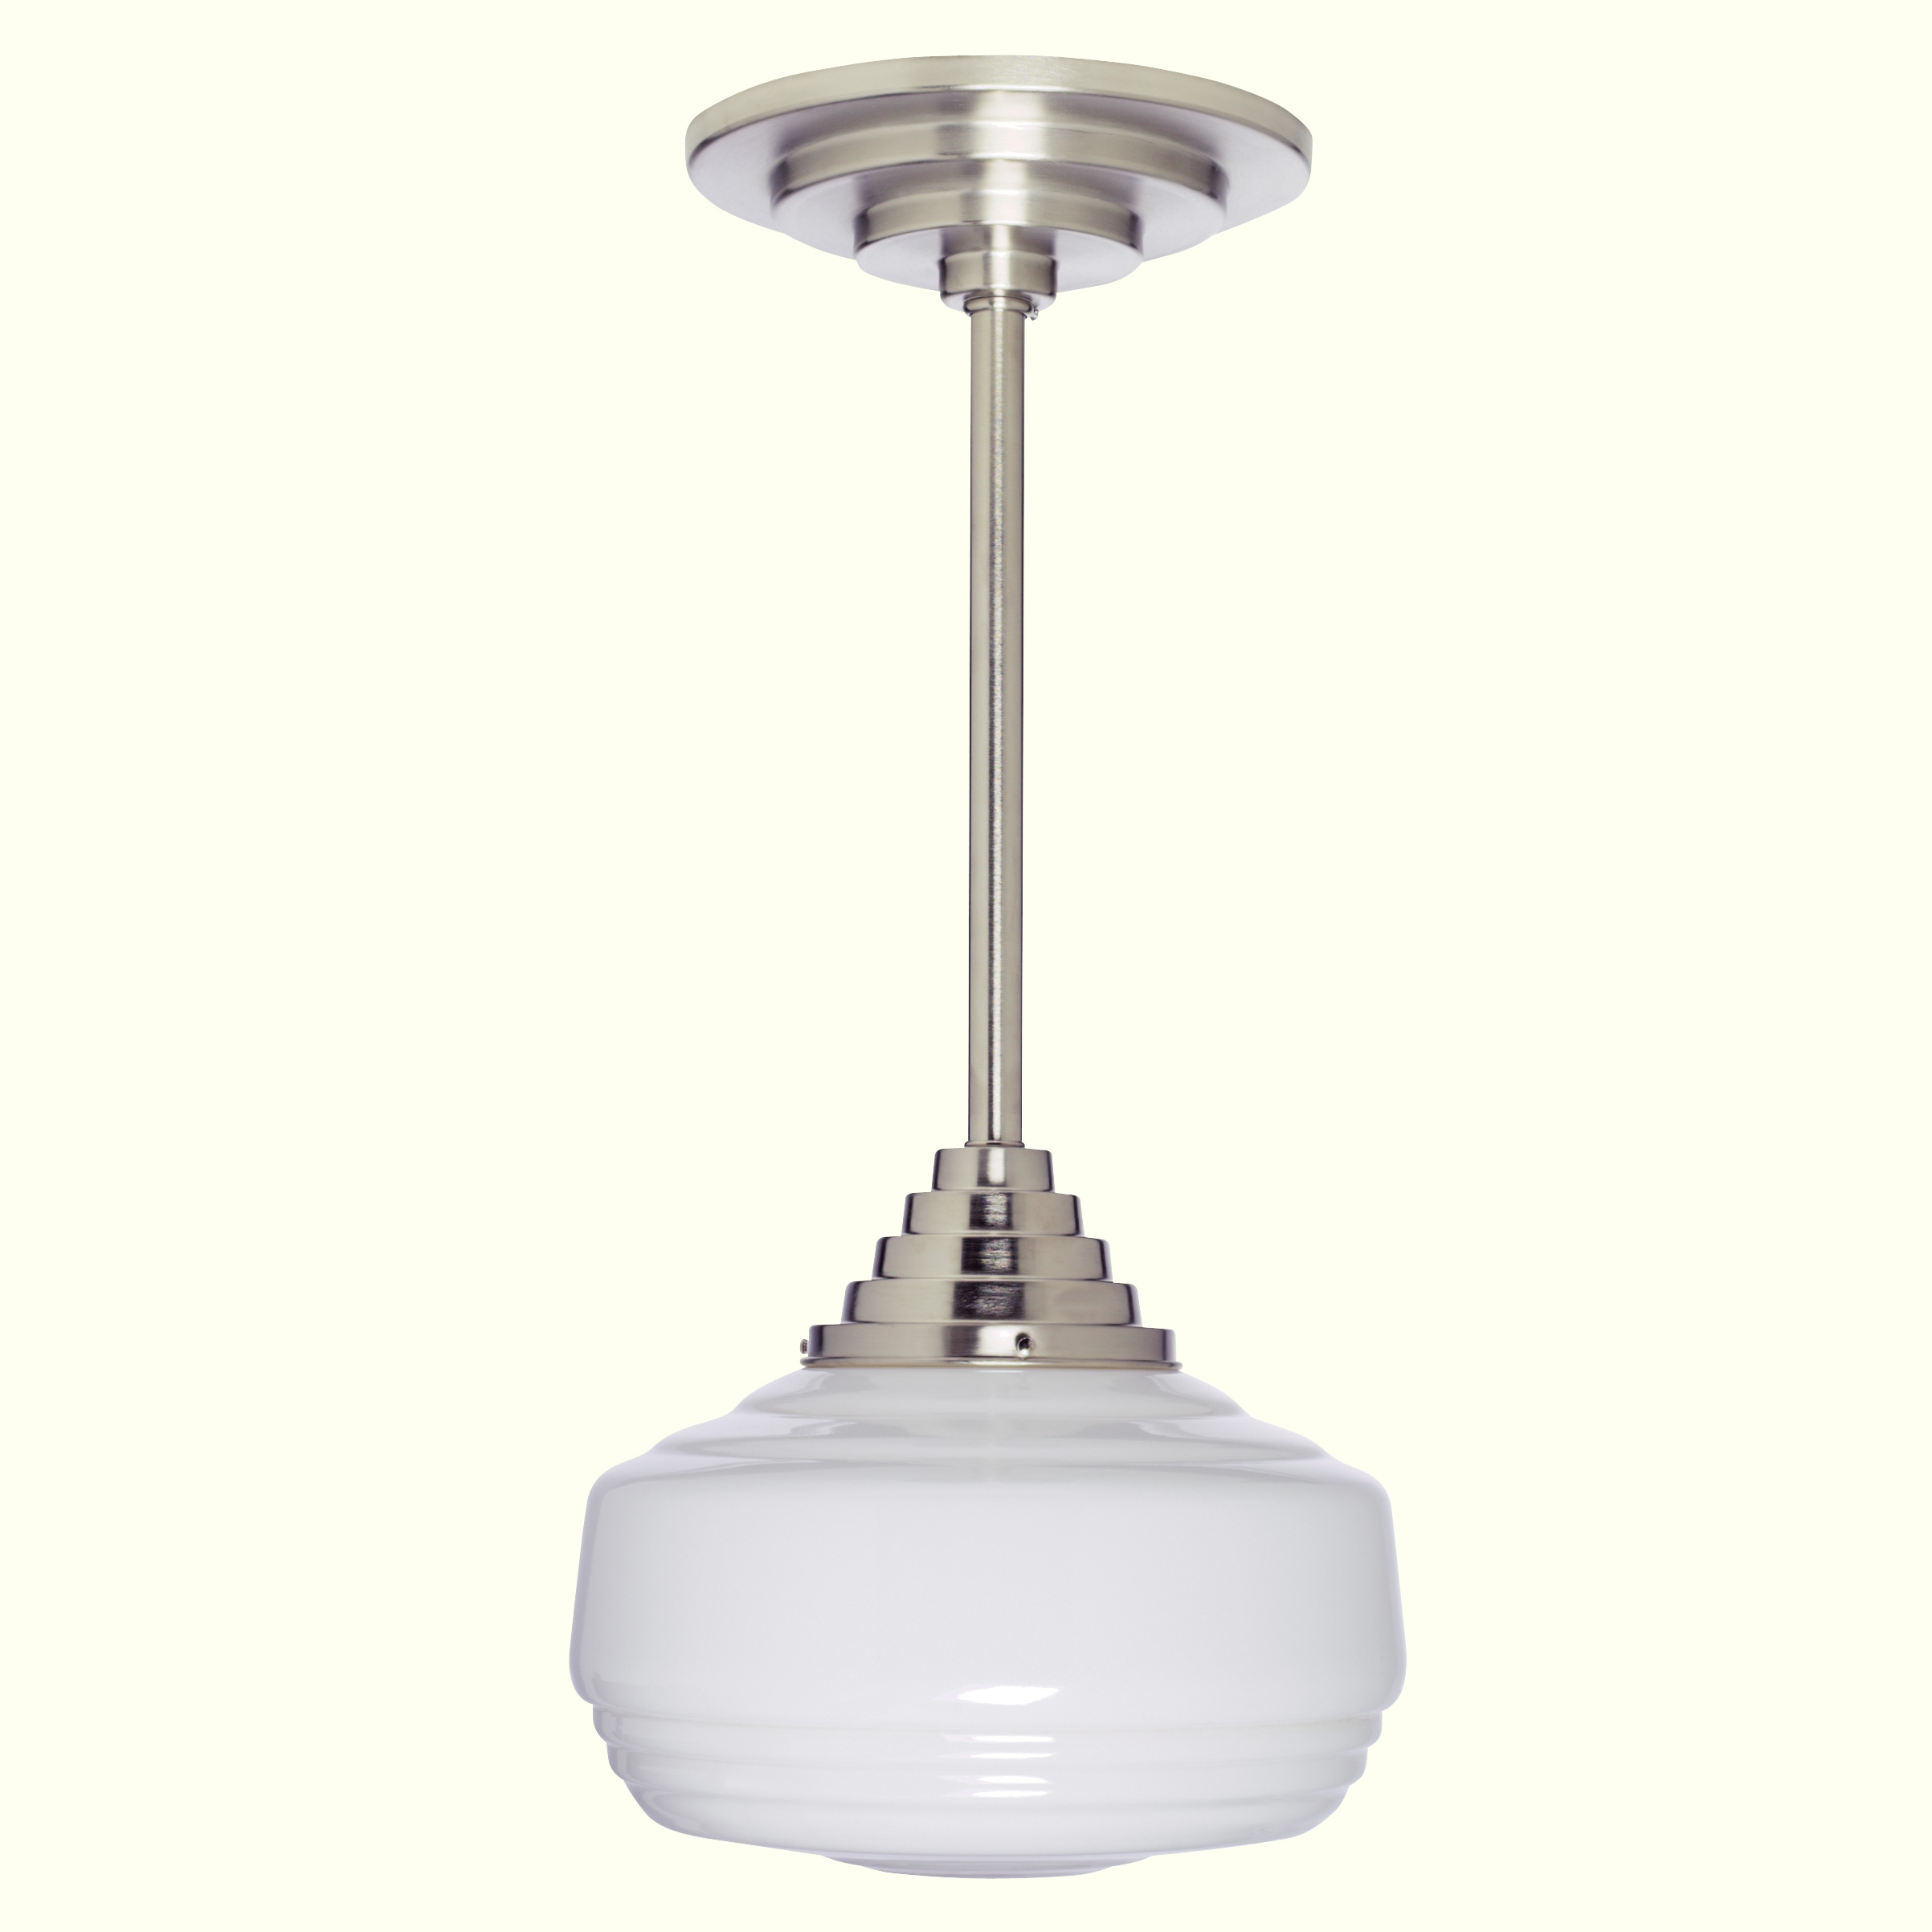 Fixture Lamp New Retro Dining Retro Pendant Light Fixture